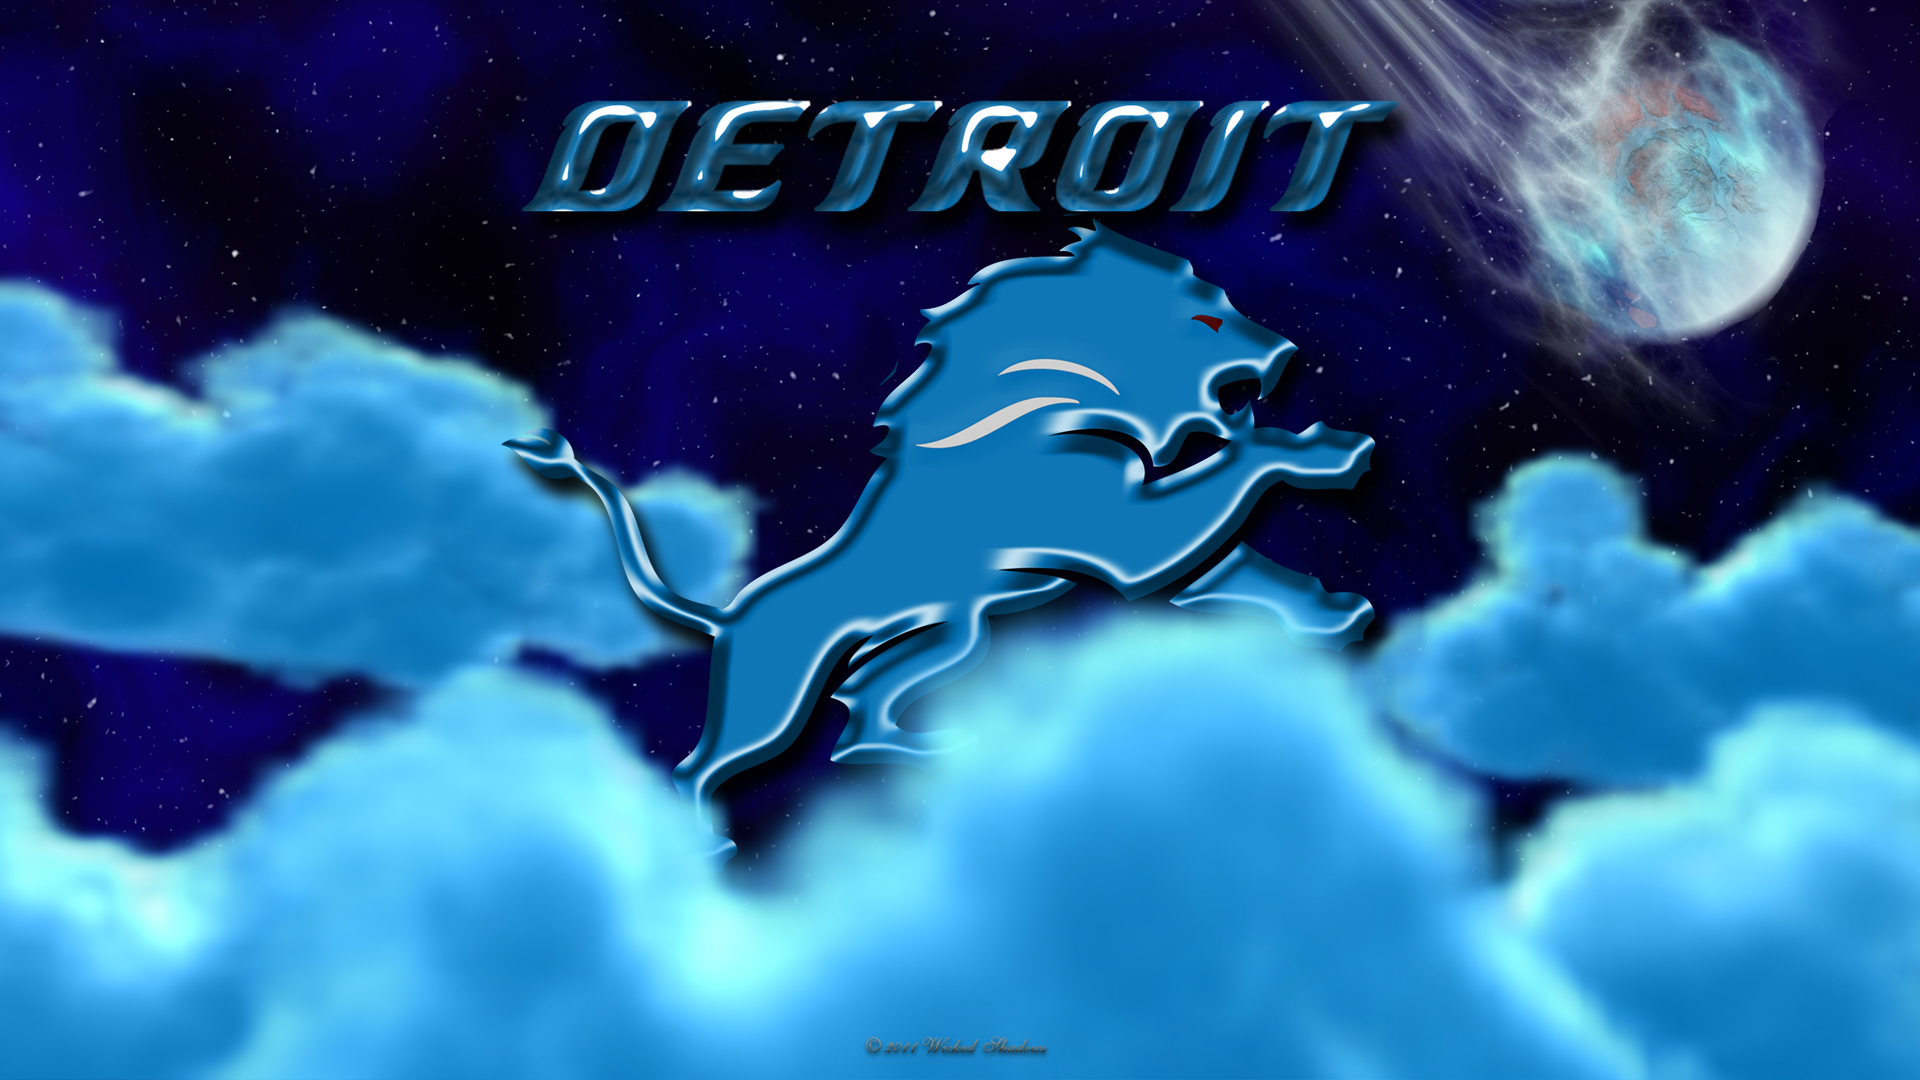 Detroit Lions One Pride Backgrounds